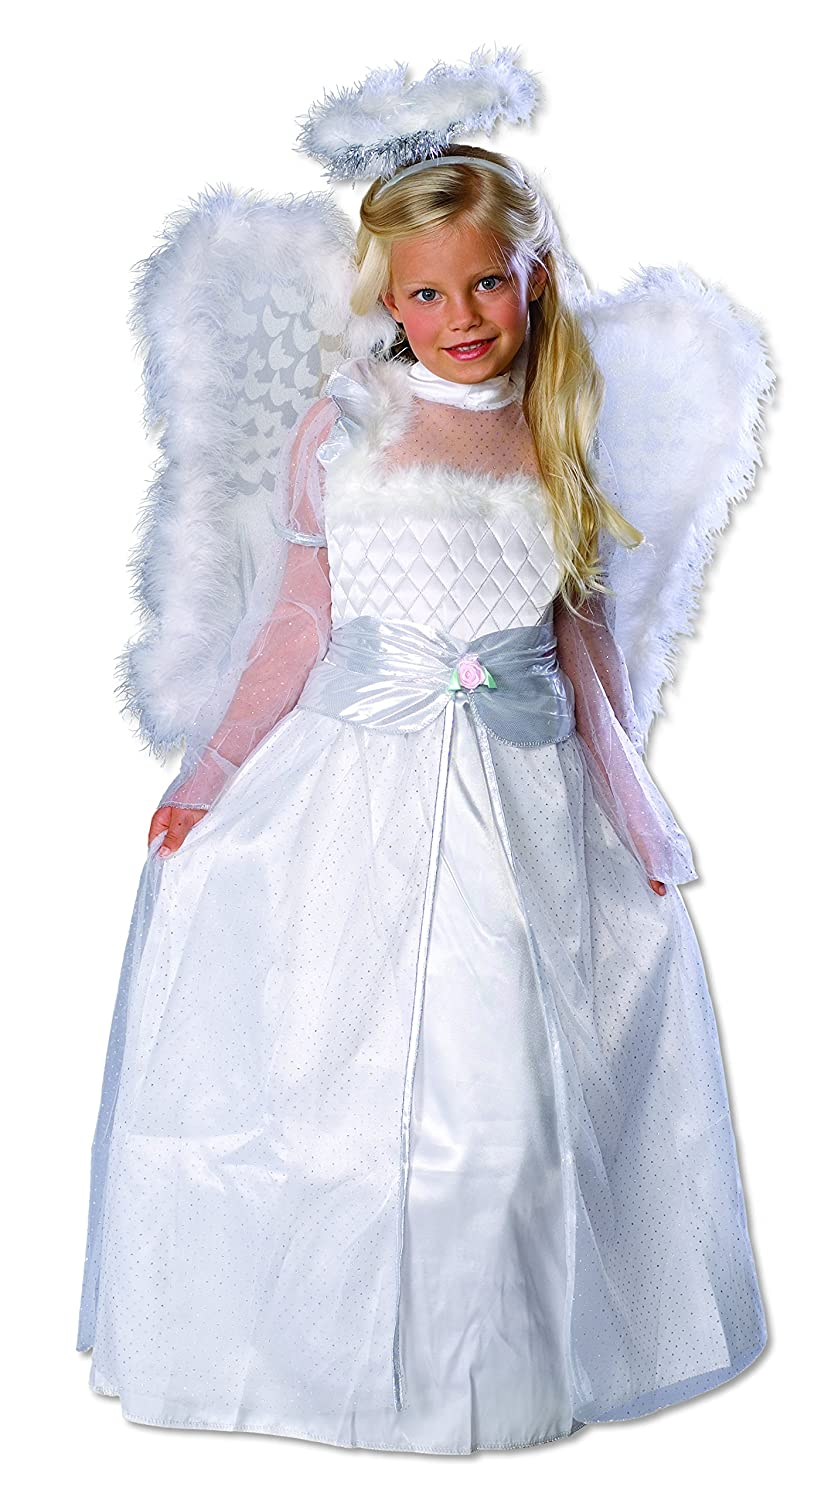 Rubies Rosebud Angel Child Costume, Medium, One Color